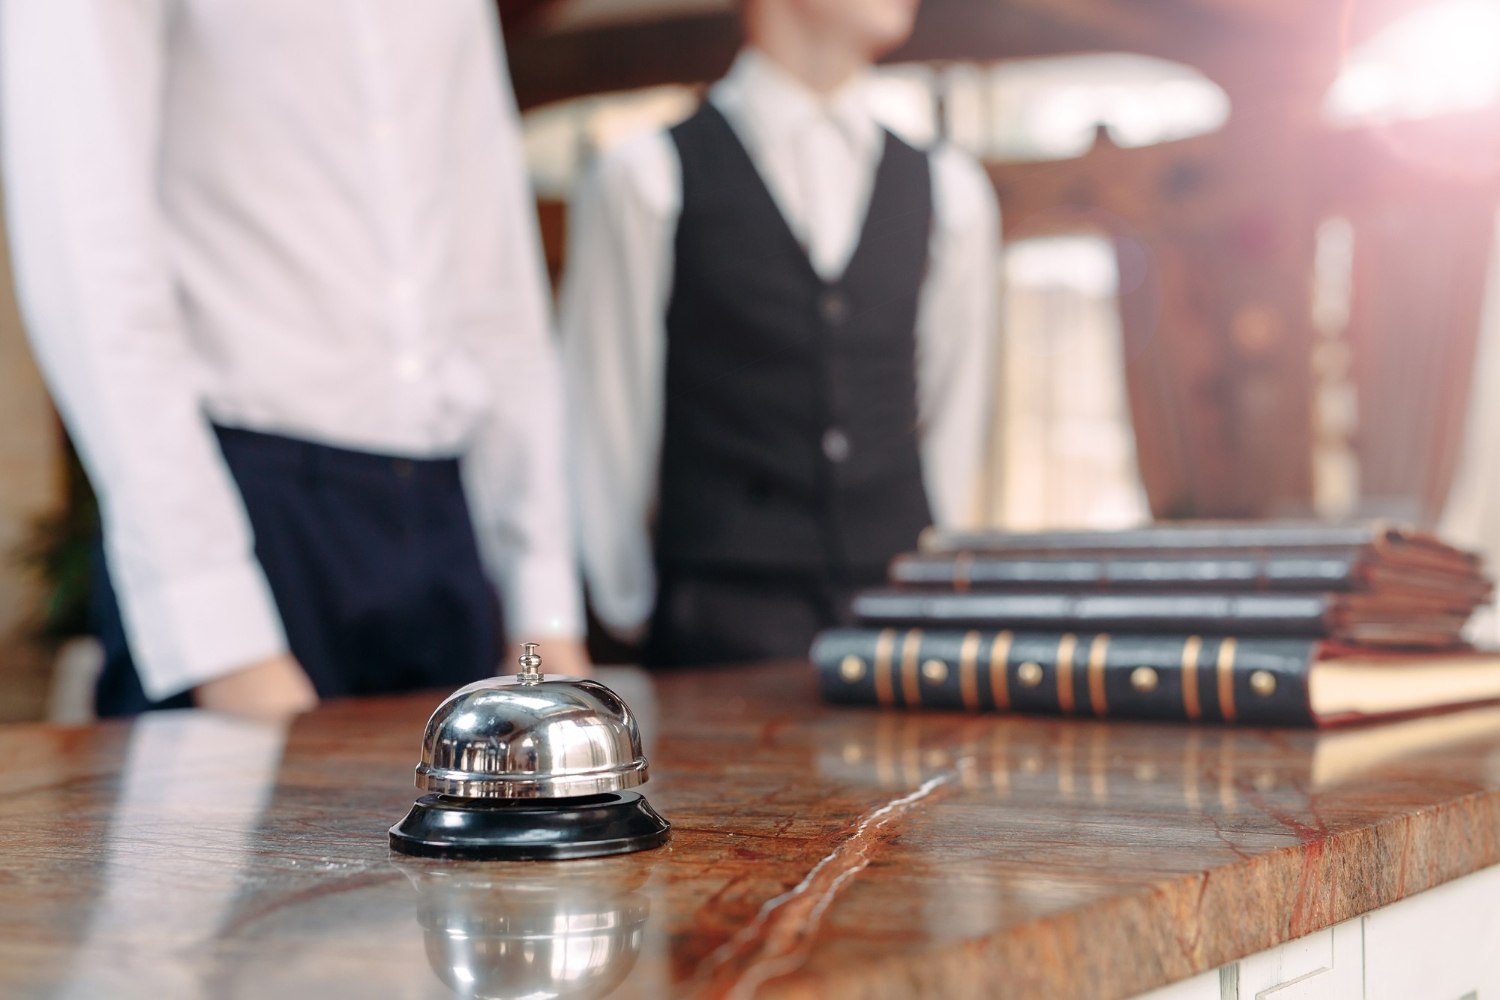 Hotel service bell concept hotel